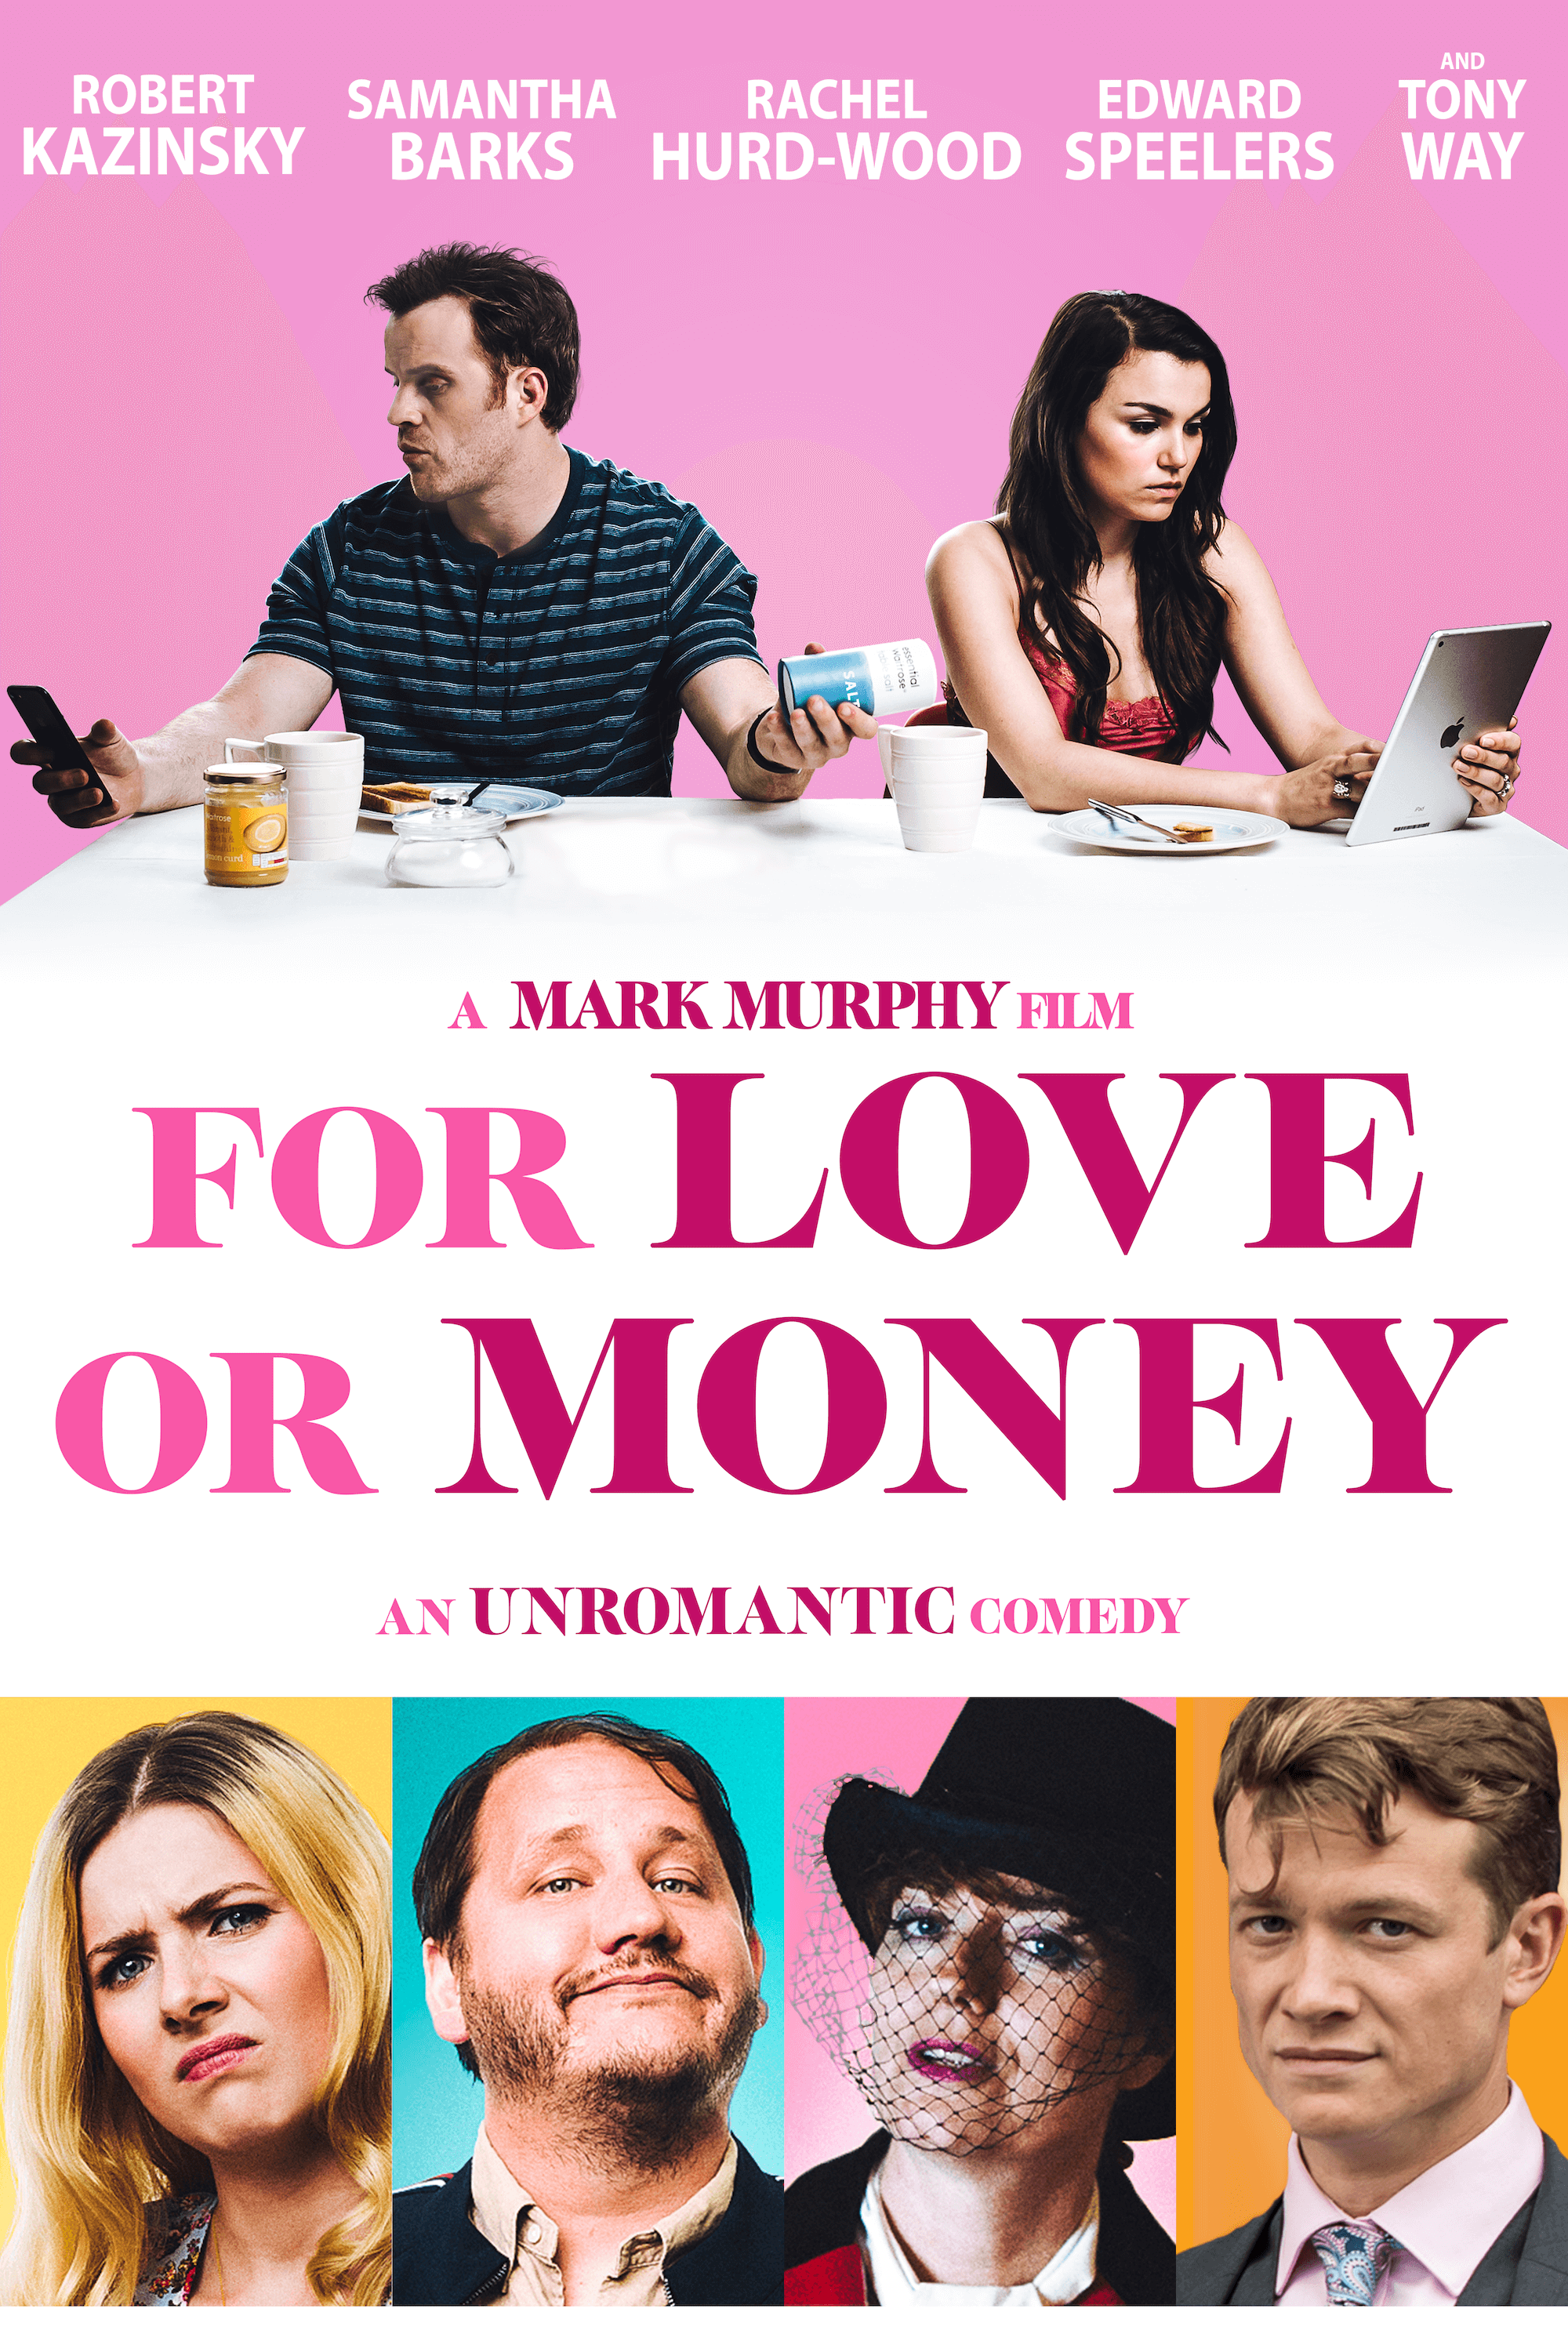 Poster for the Unromantic Comedy For Love or Money